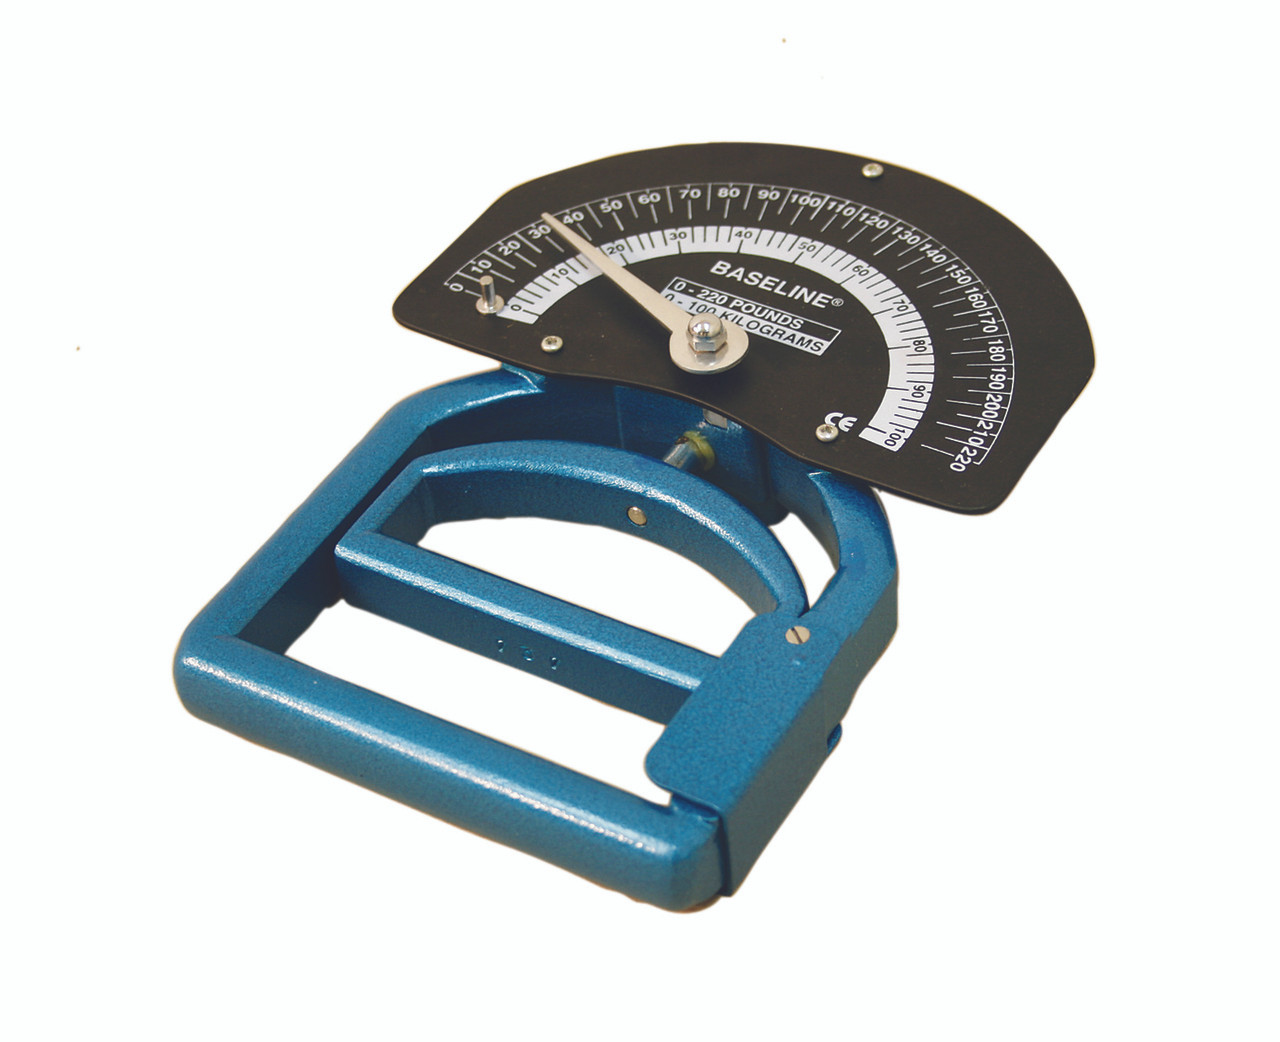 Baseline¨ Dynamometer - Smedley Spring - Adult - 220 lb Capacity